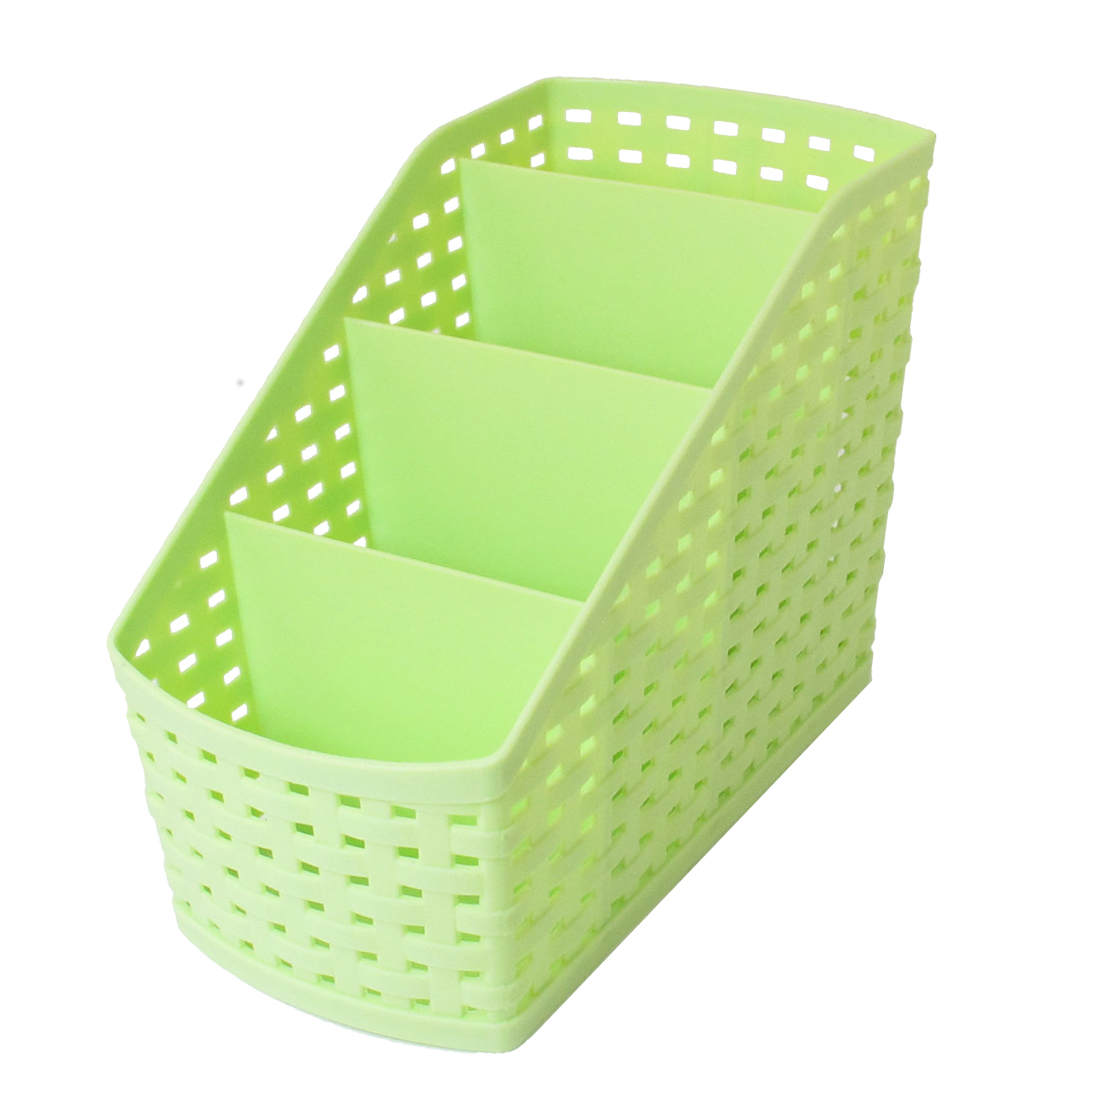 Desktop Sundries Classification Plastic 4 Slots Storage Case Basket Box Green